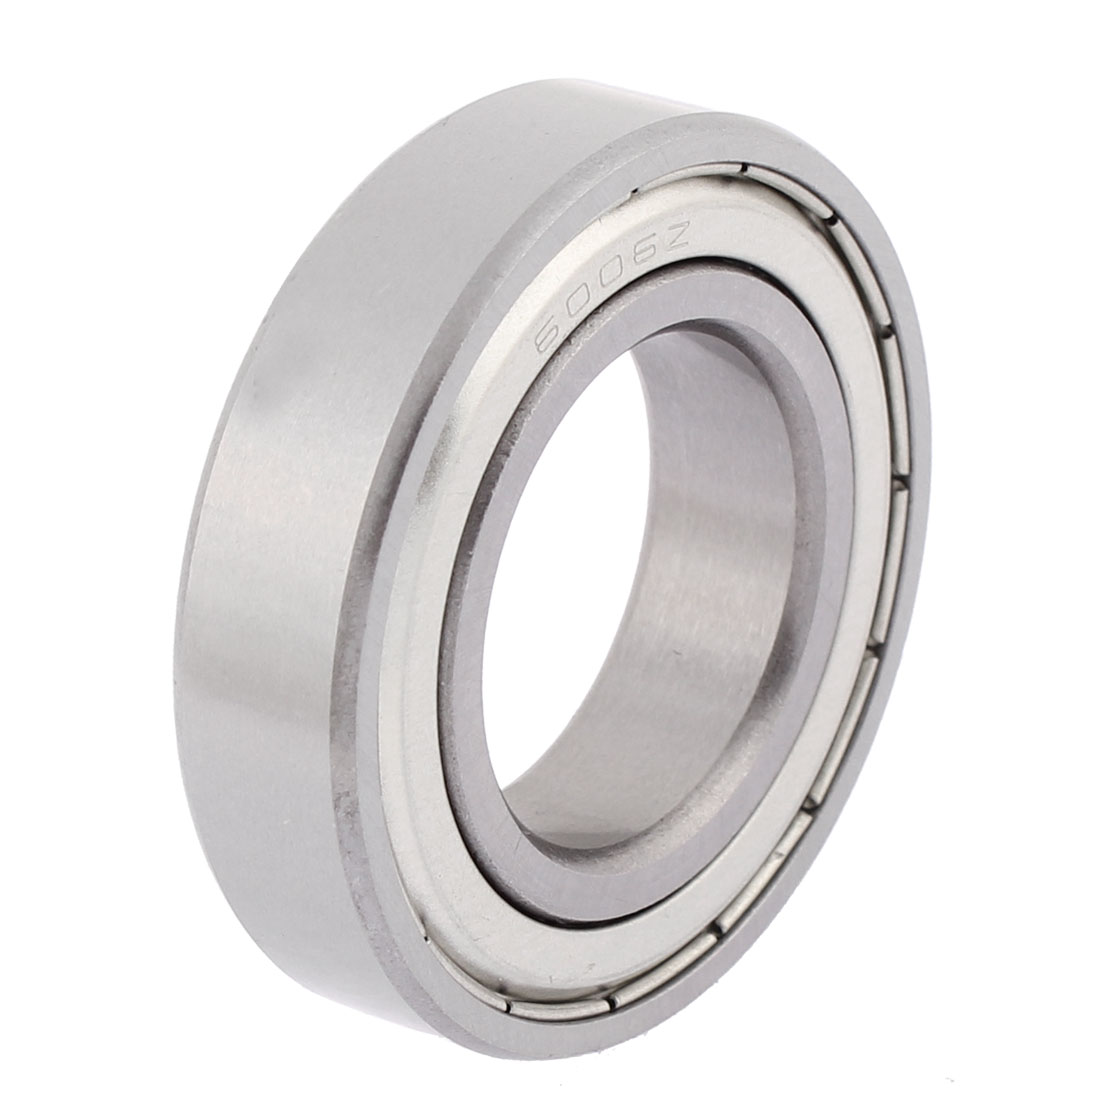 54mm x 31mm x 13mm Double Shielded 6006Z Metal Deep Groove Guide Pulley Rail Ball Wheel Bearings Silver Tone